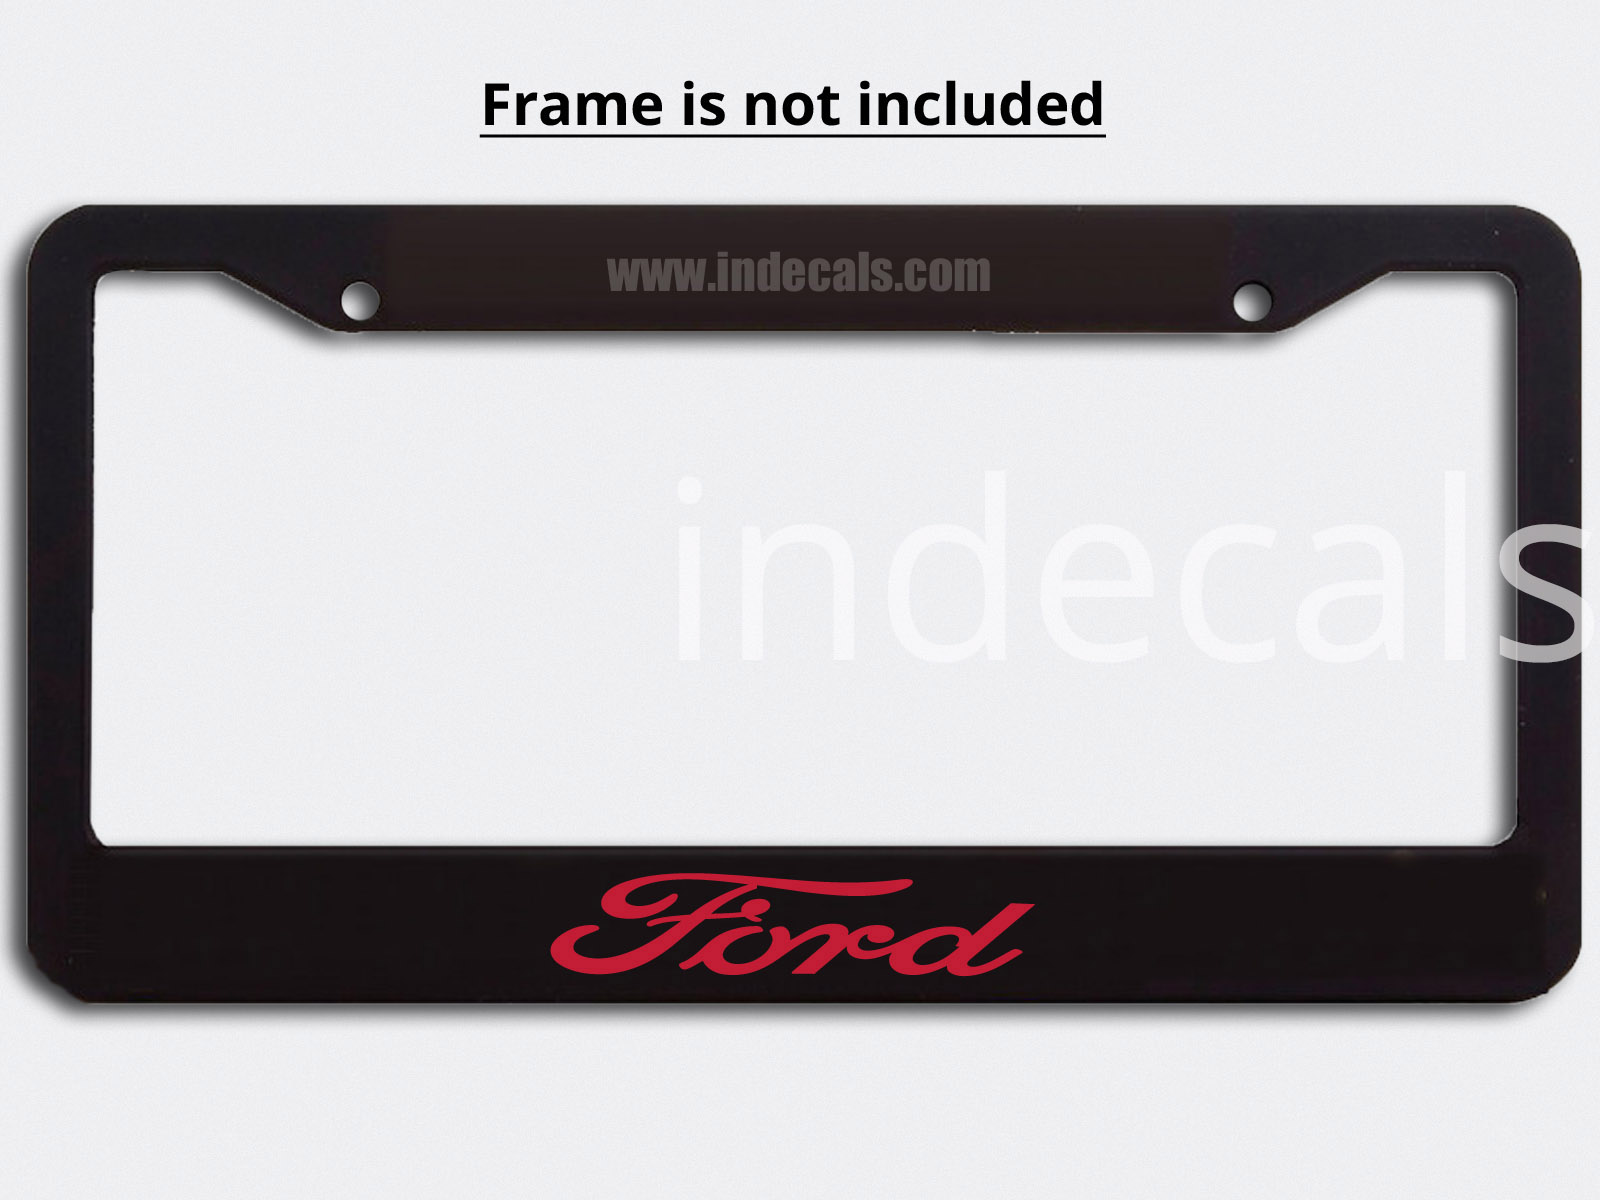 3 x Ford Stickers for Plate Frame - Red